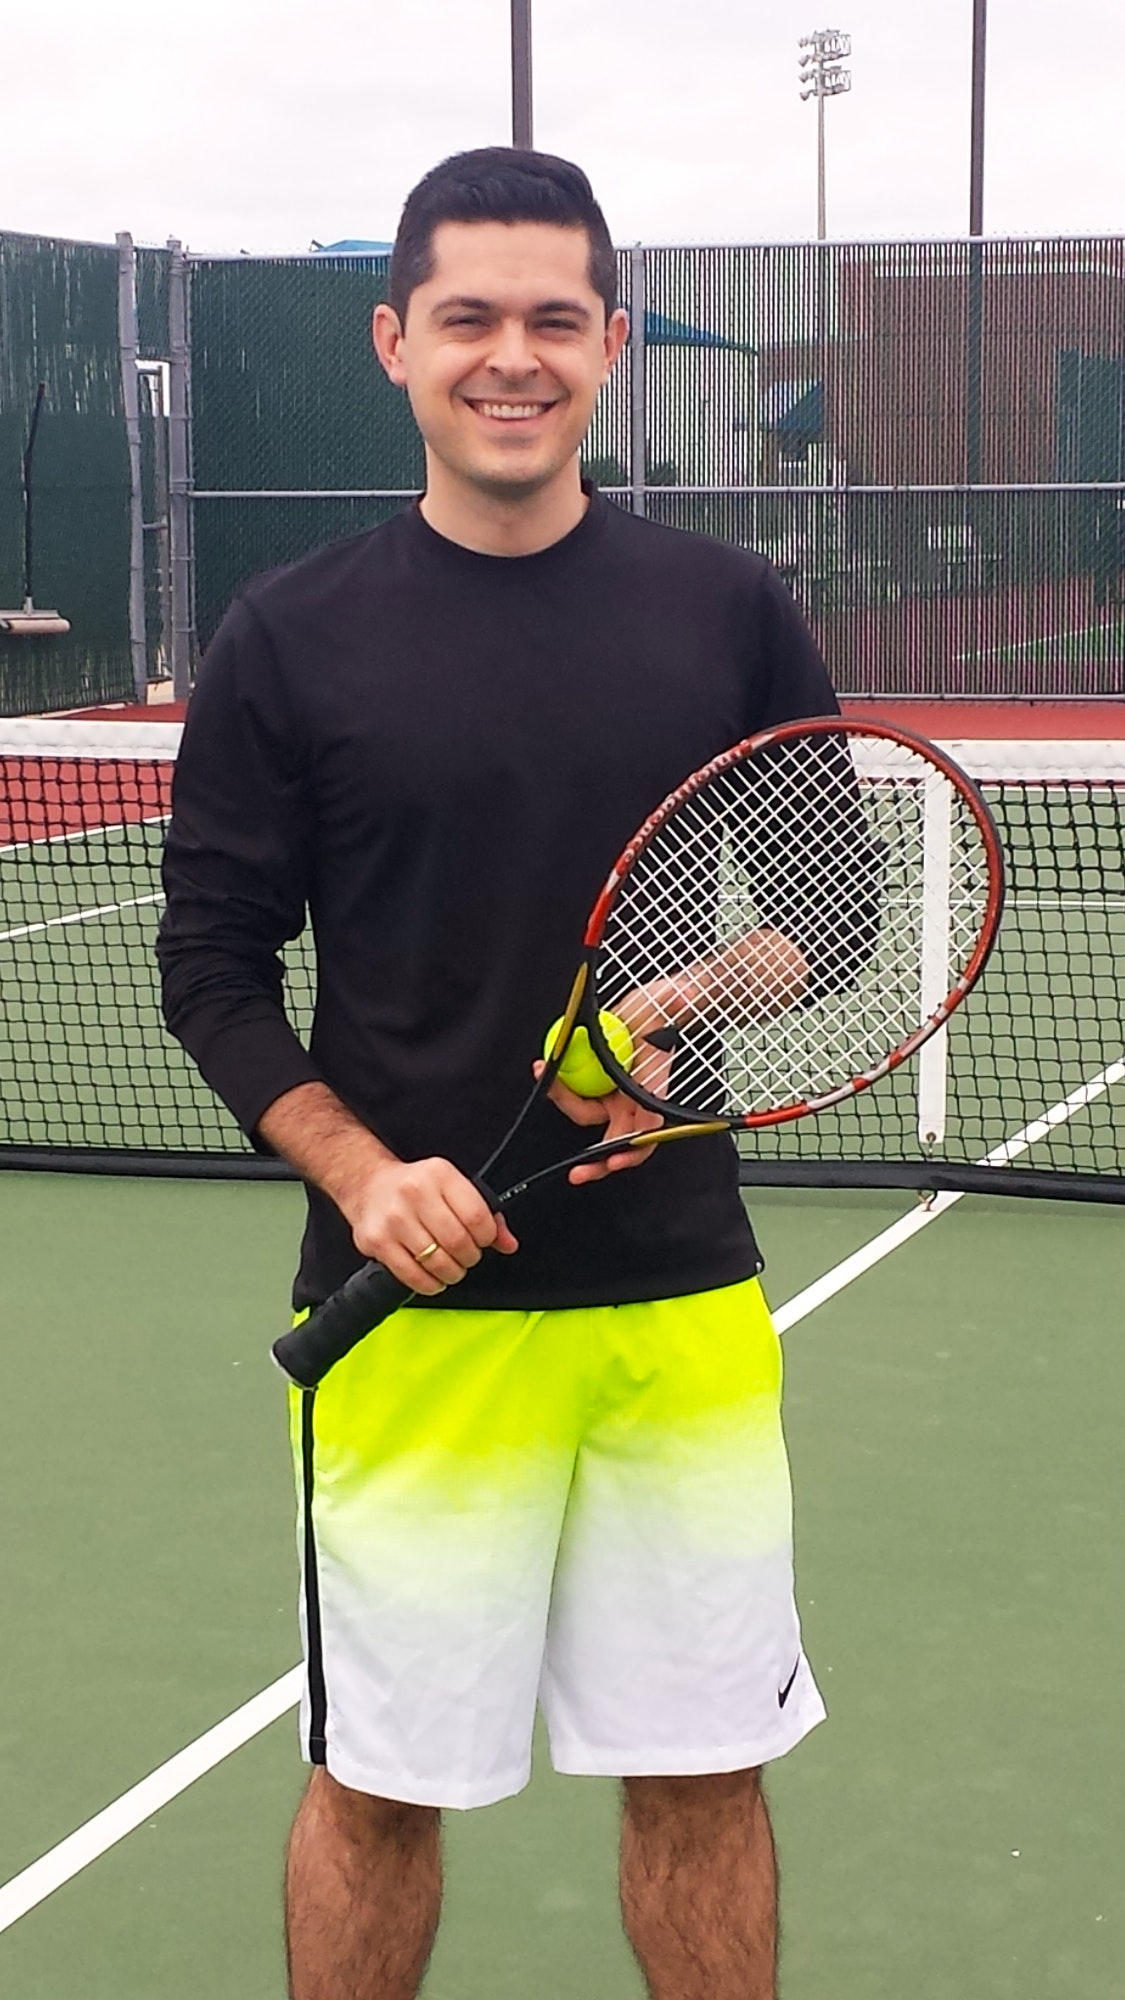 Andres F. teaches tennis lessons in Plano, TX